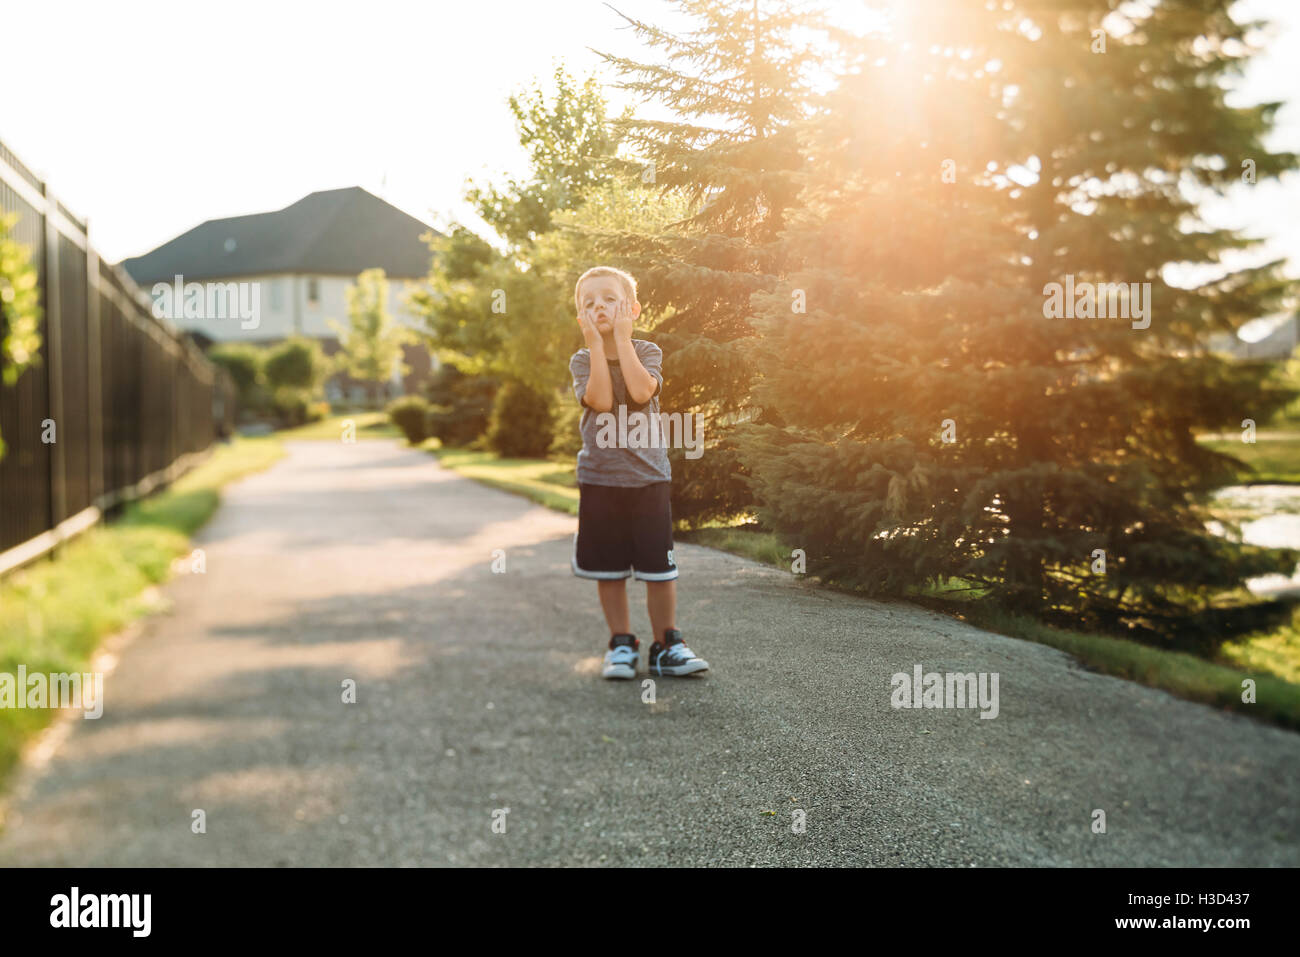 Boredom boy standing on footpath by trees - Stock Image